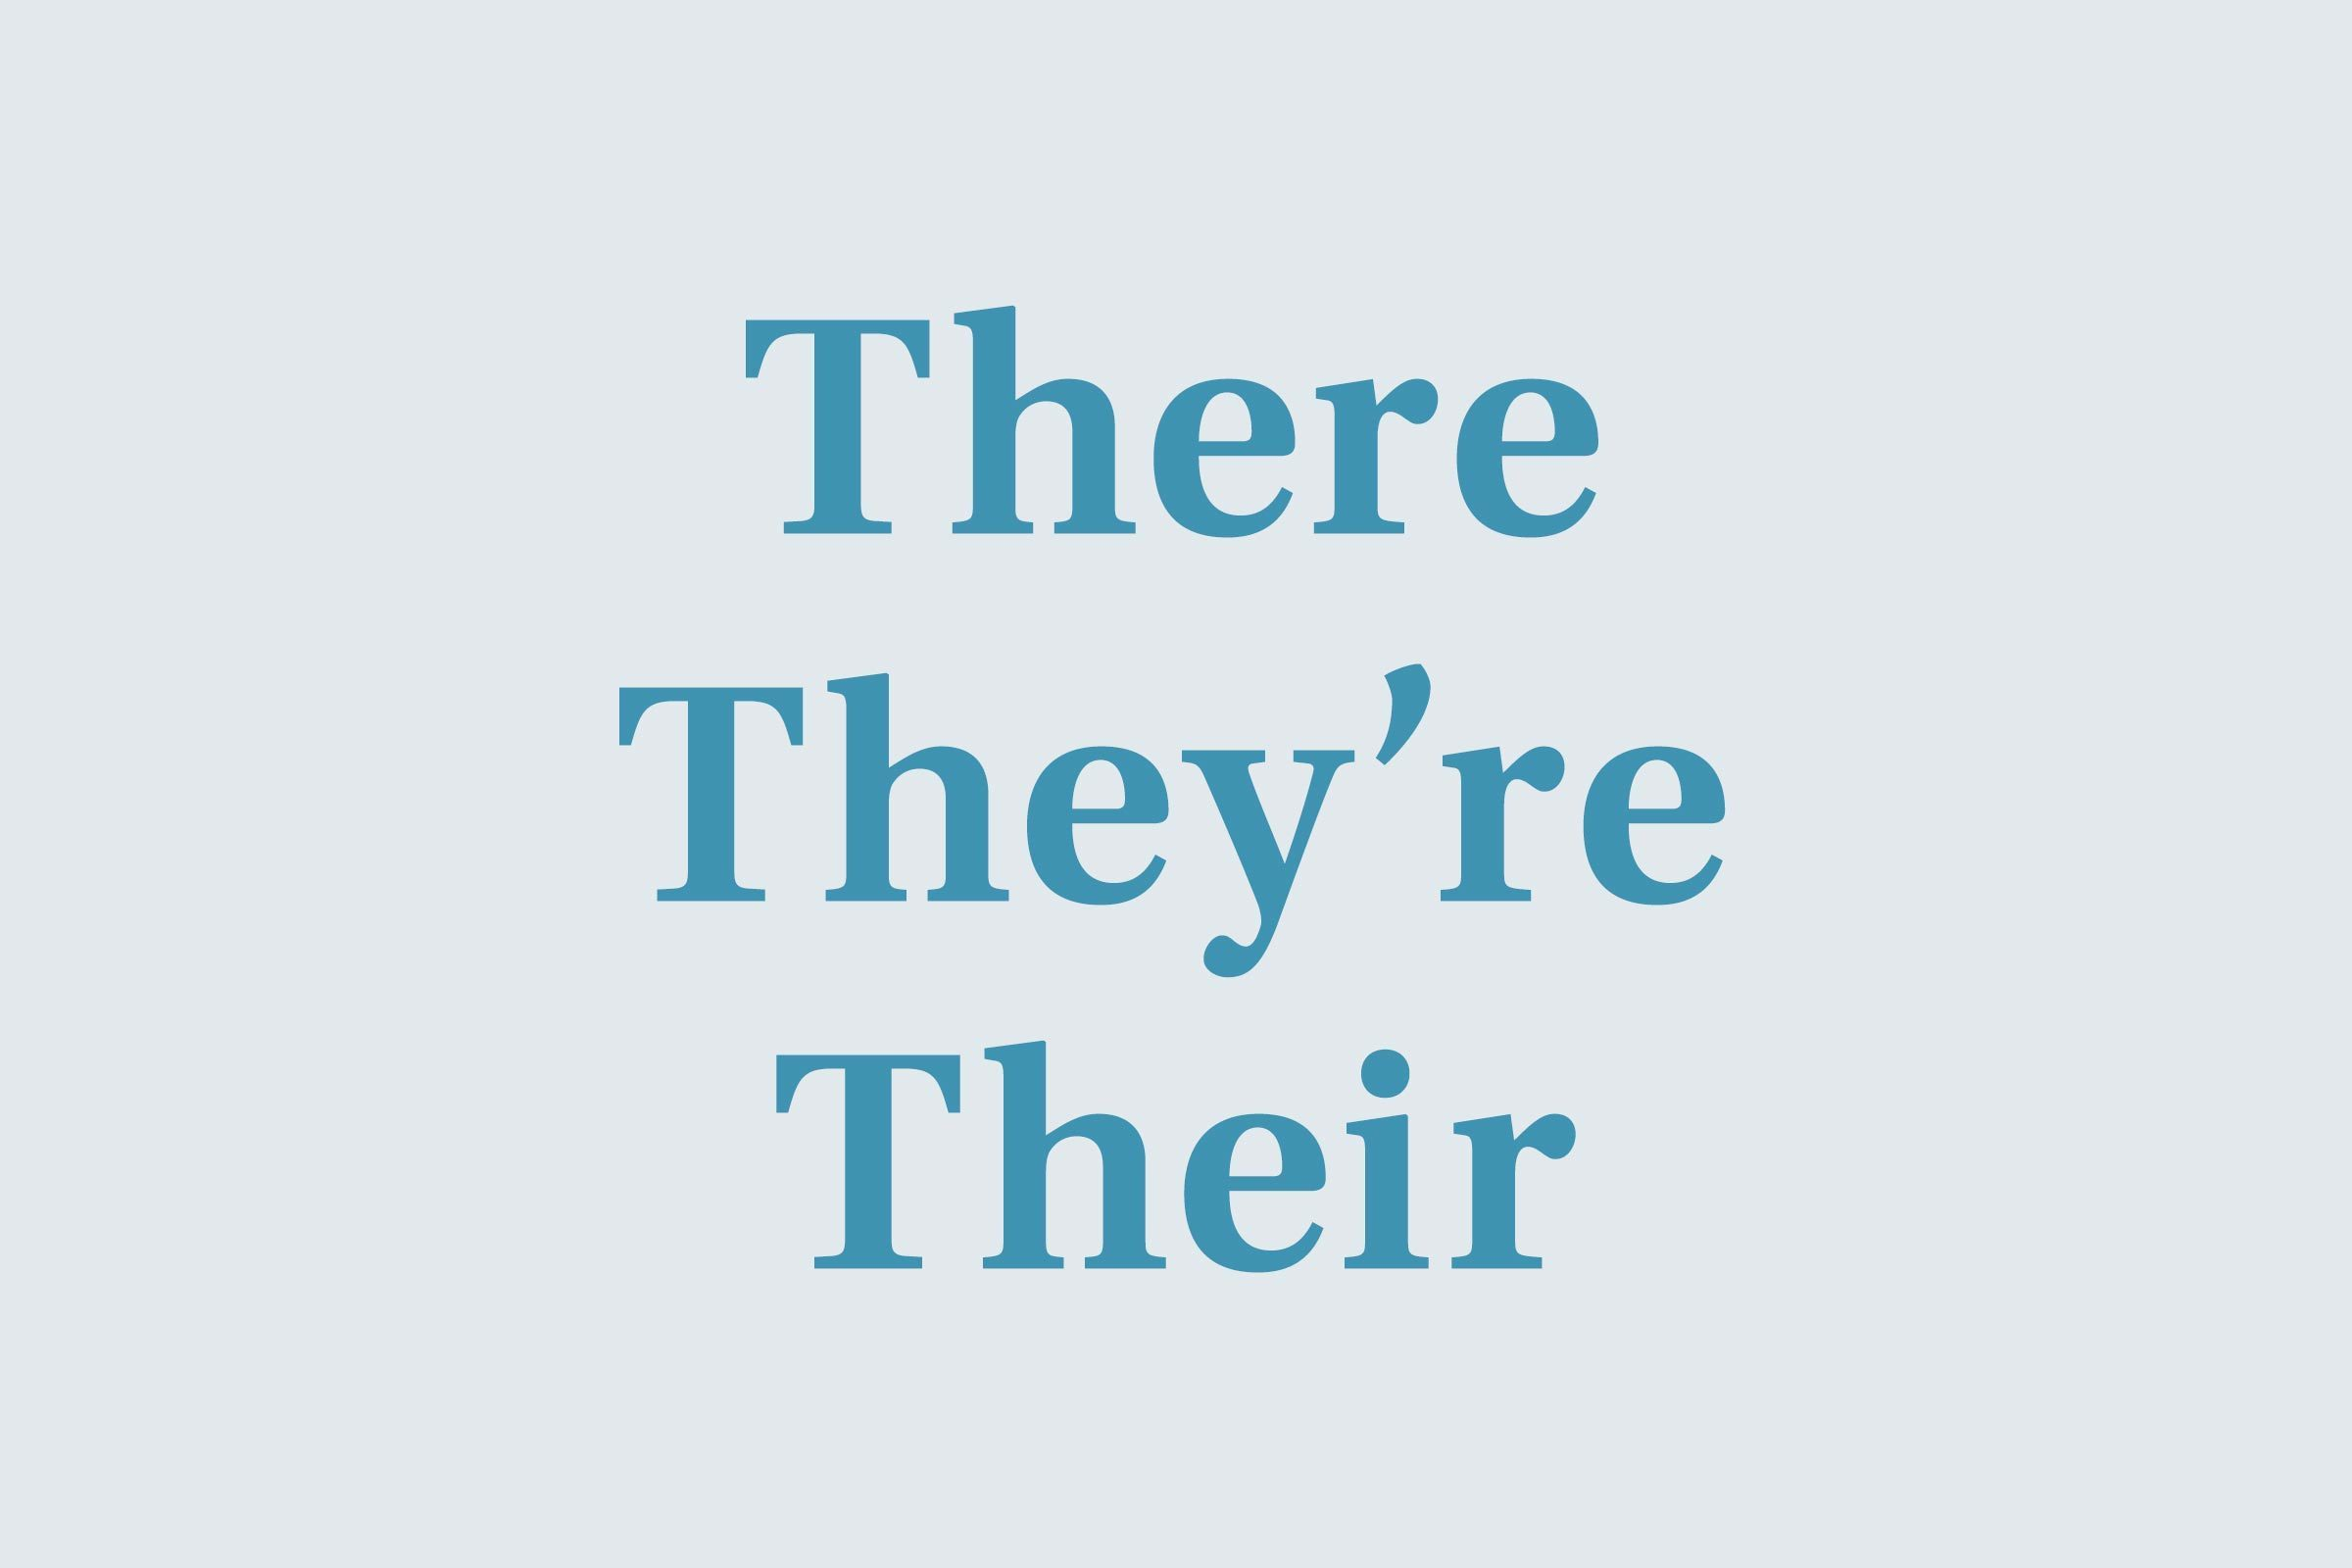 There, they're, and their